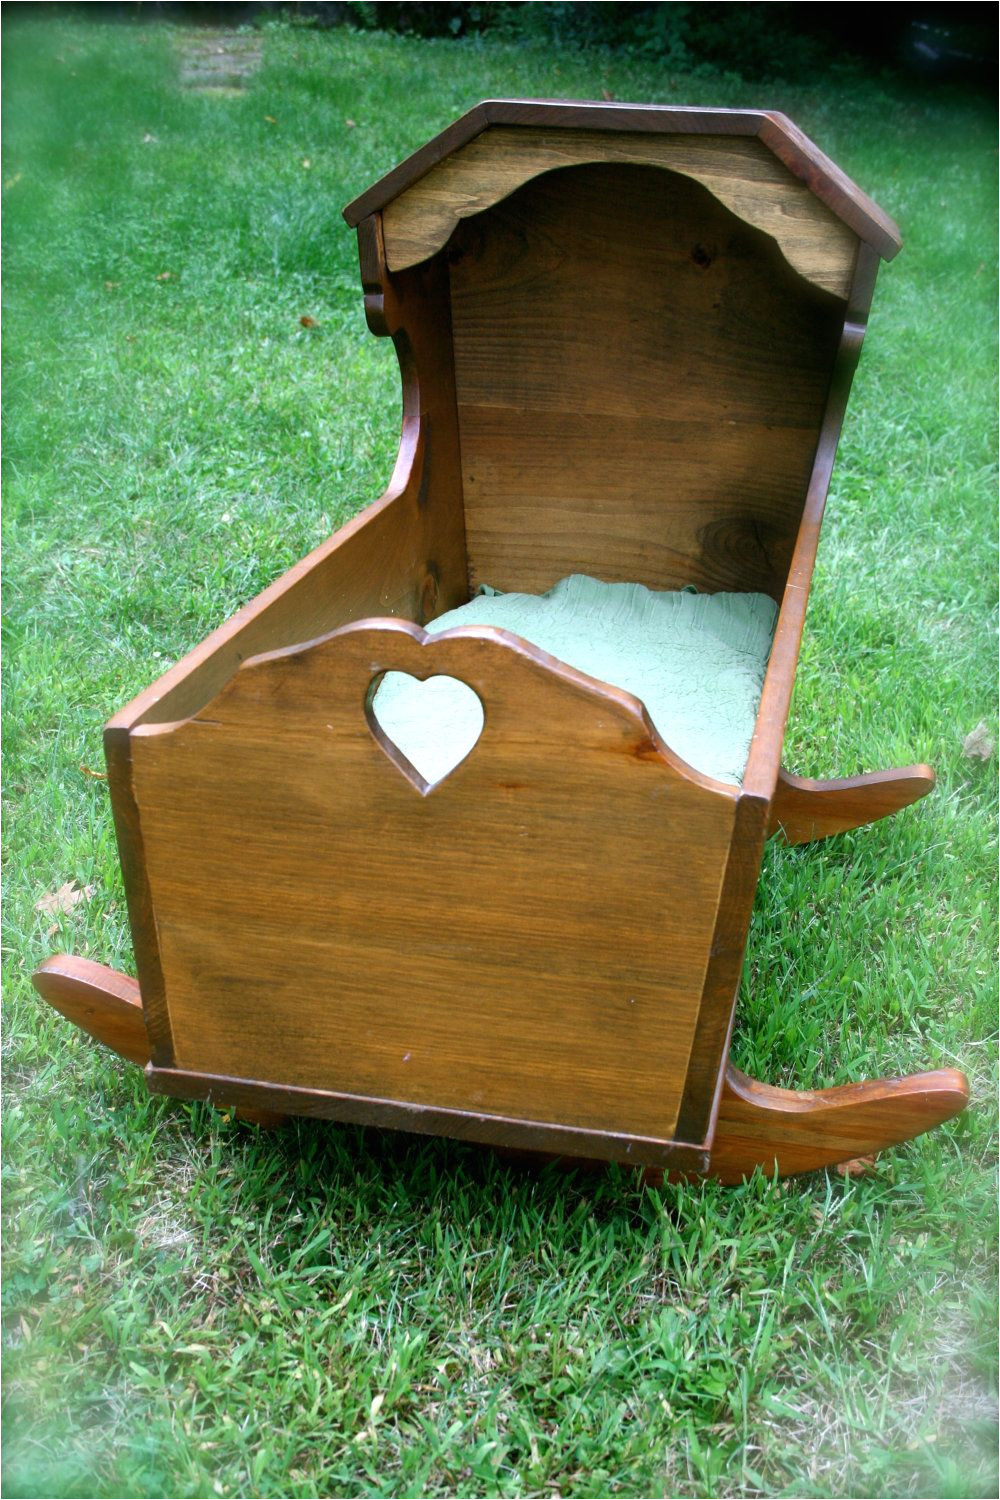 vintage handmade wooden cradle bassinet my brother made this exact cradle for my daughter